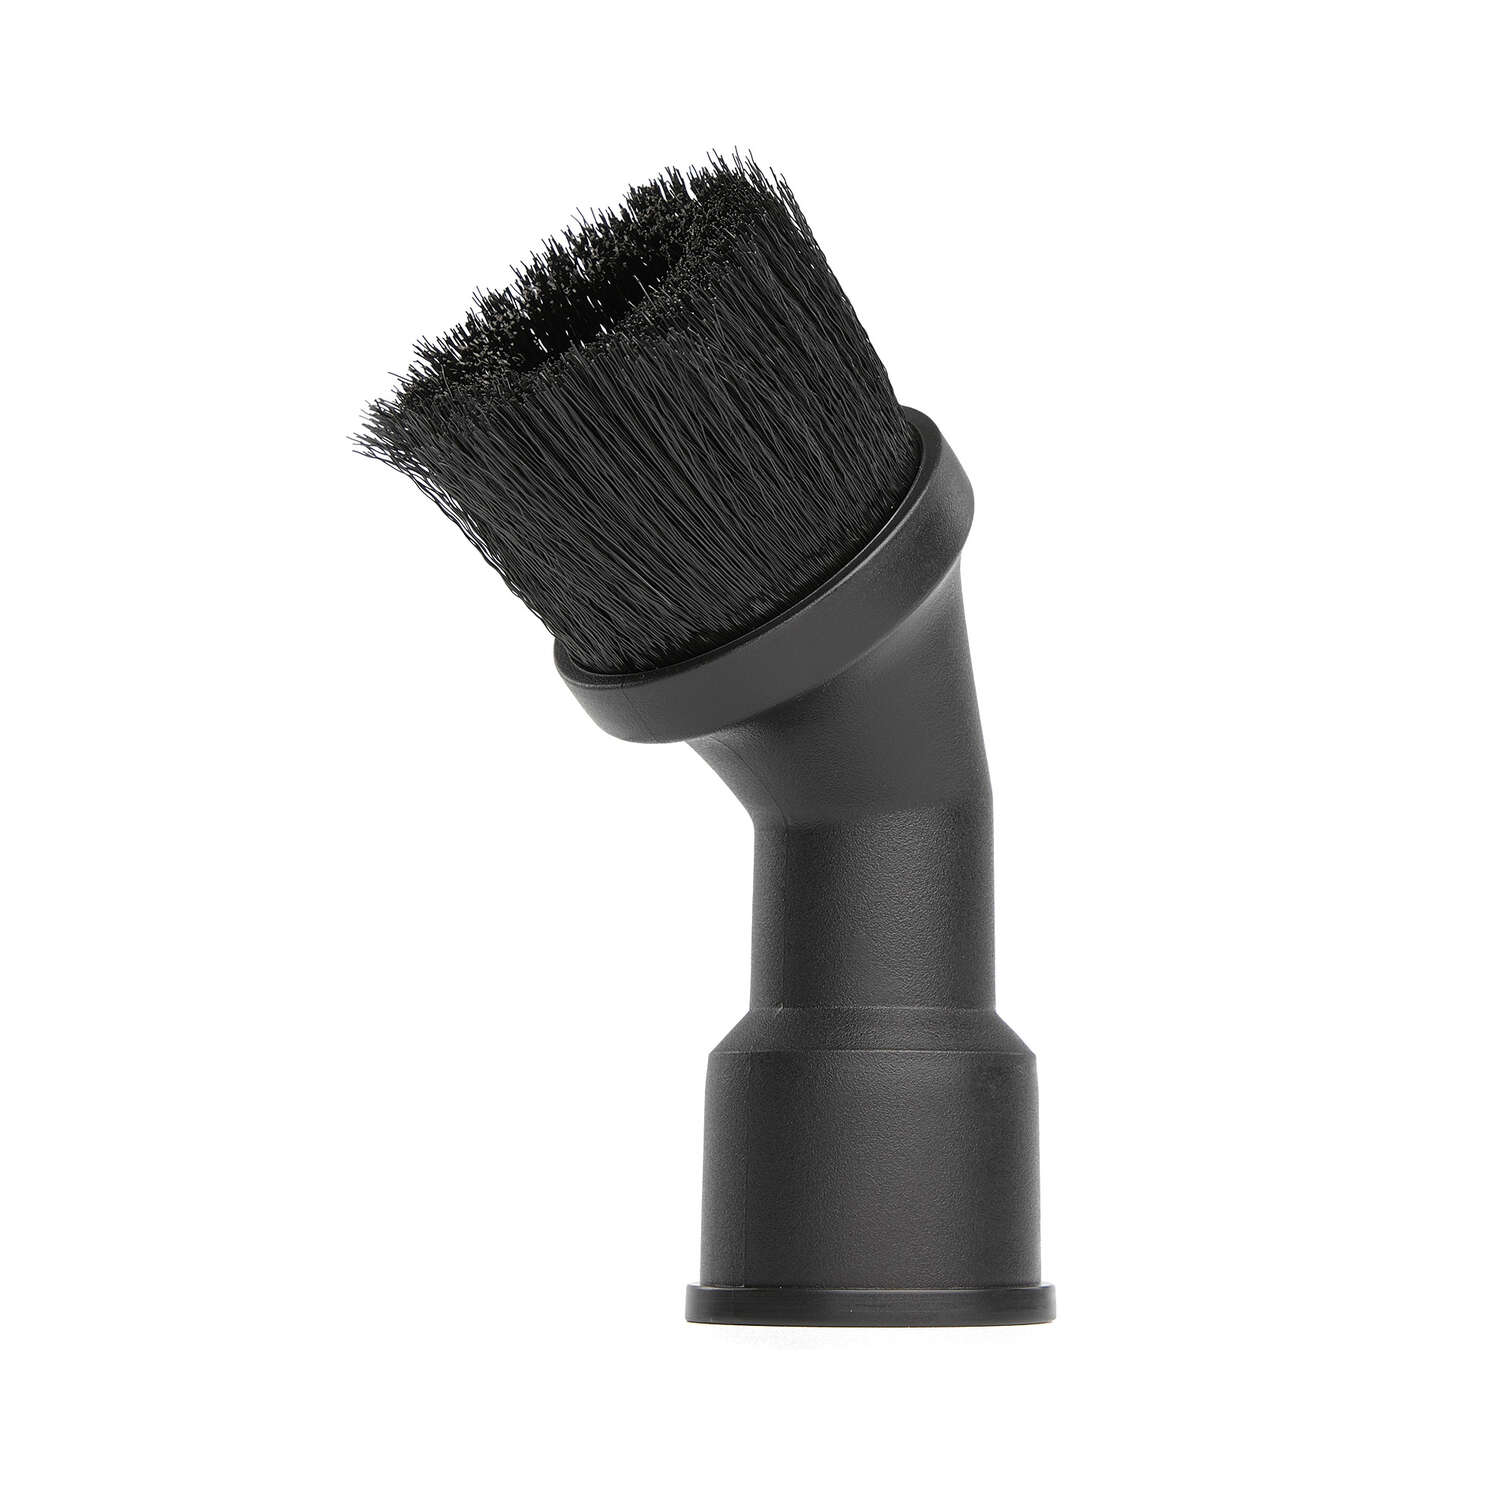 Craftsman  7.5  L x 6.13 in. W x 1-7/8 in. Dia. Dusting Brush  1 pc.